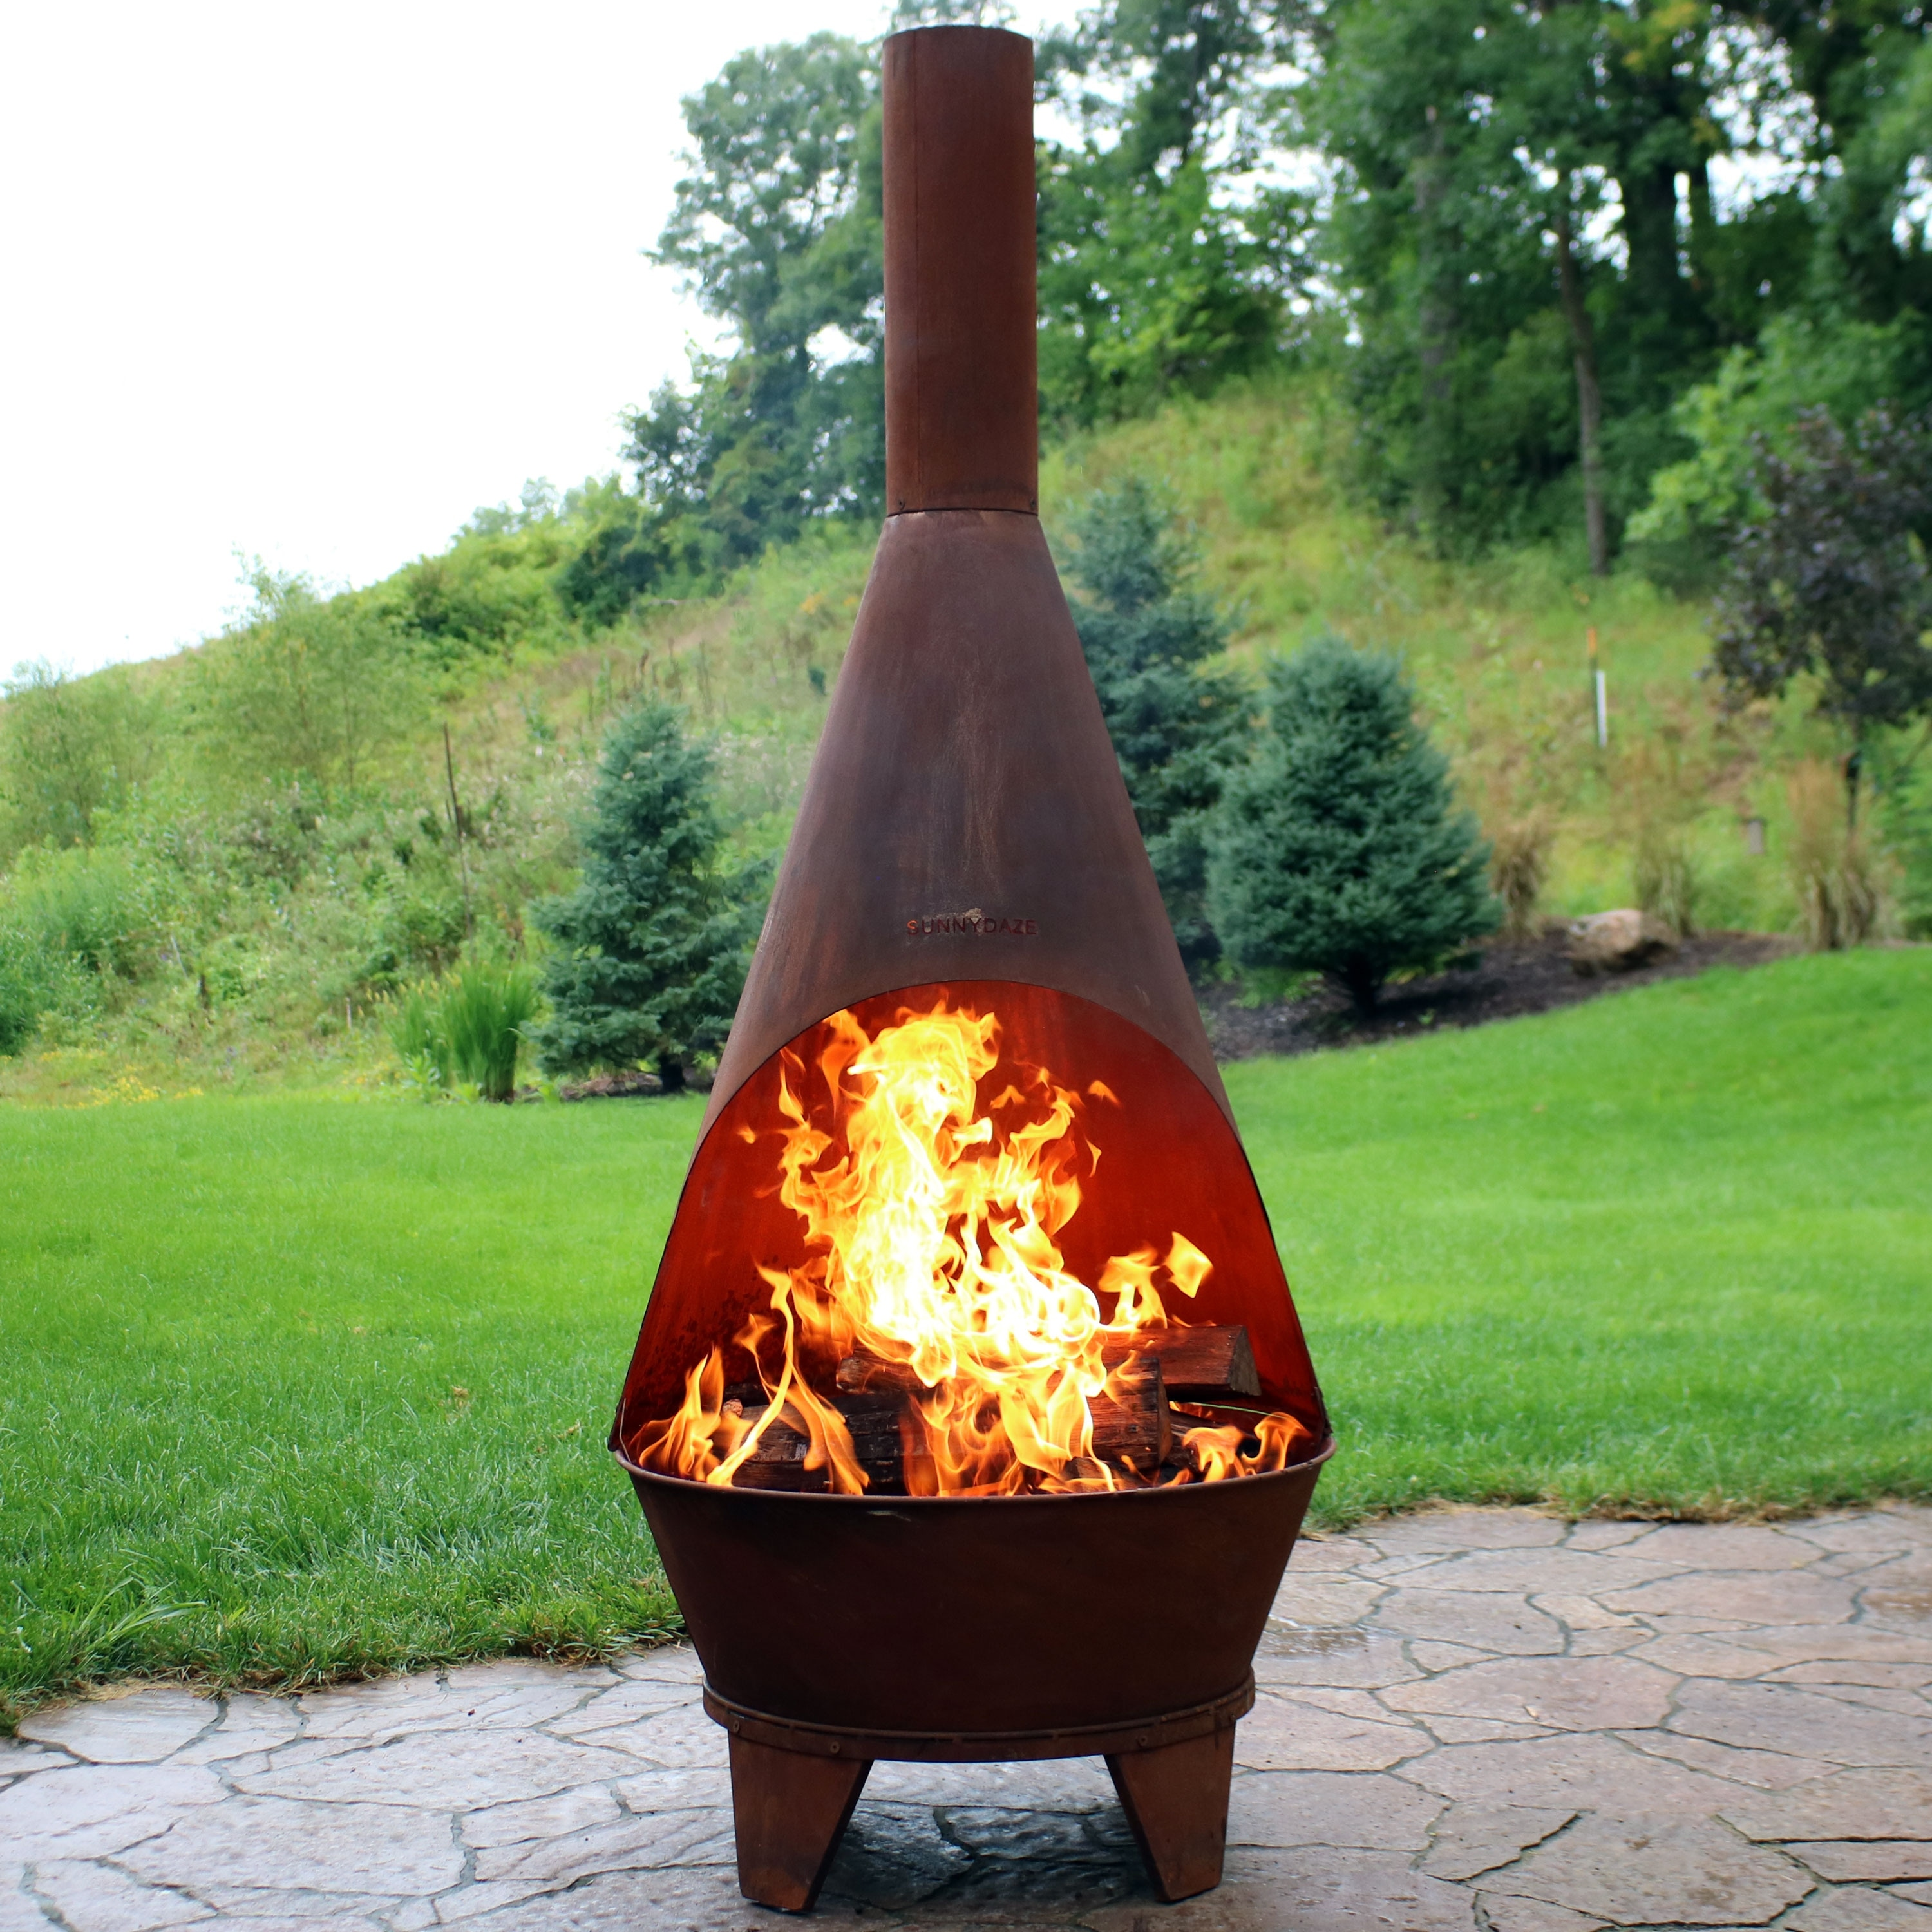 Sunnydaze 75 Inch Chiminea Wood Burning Fire Pit Steel With Oxidized Finish Overstock 21853787